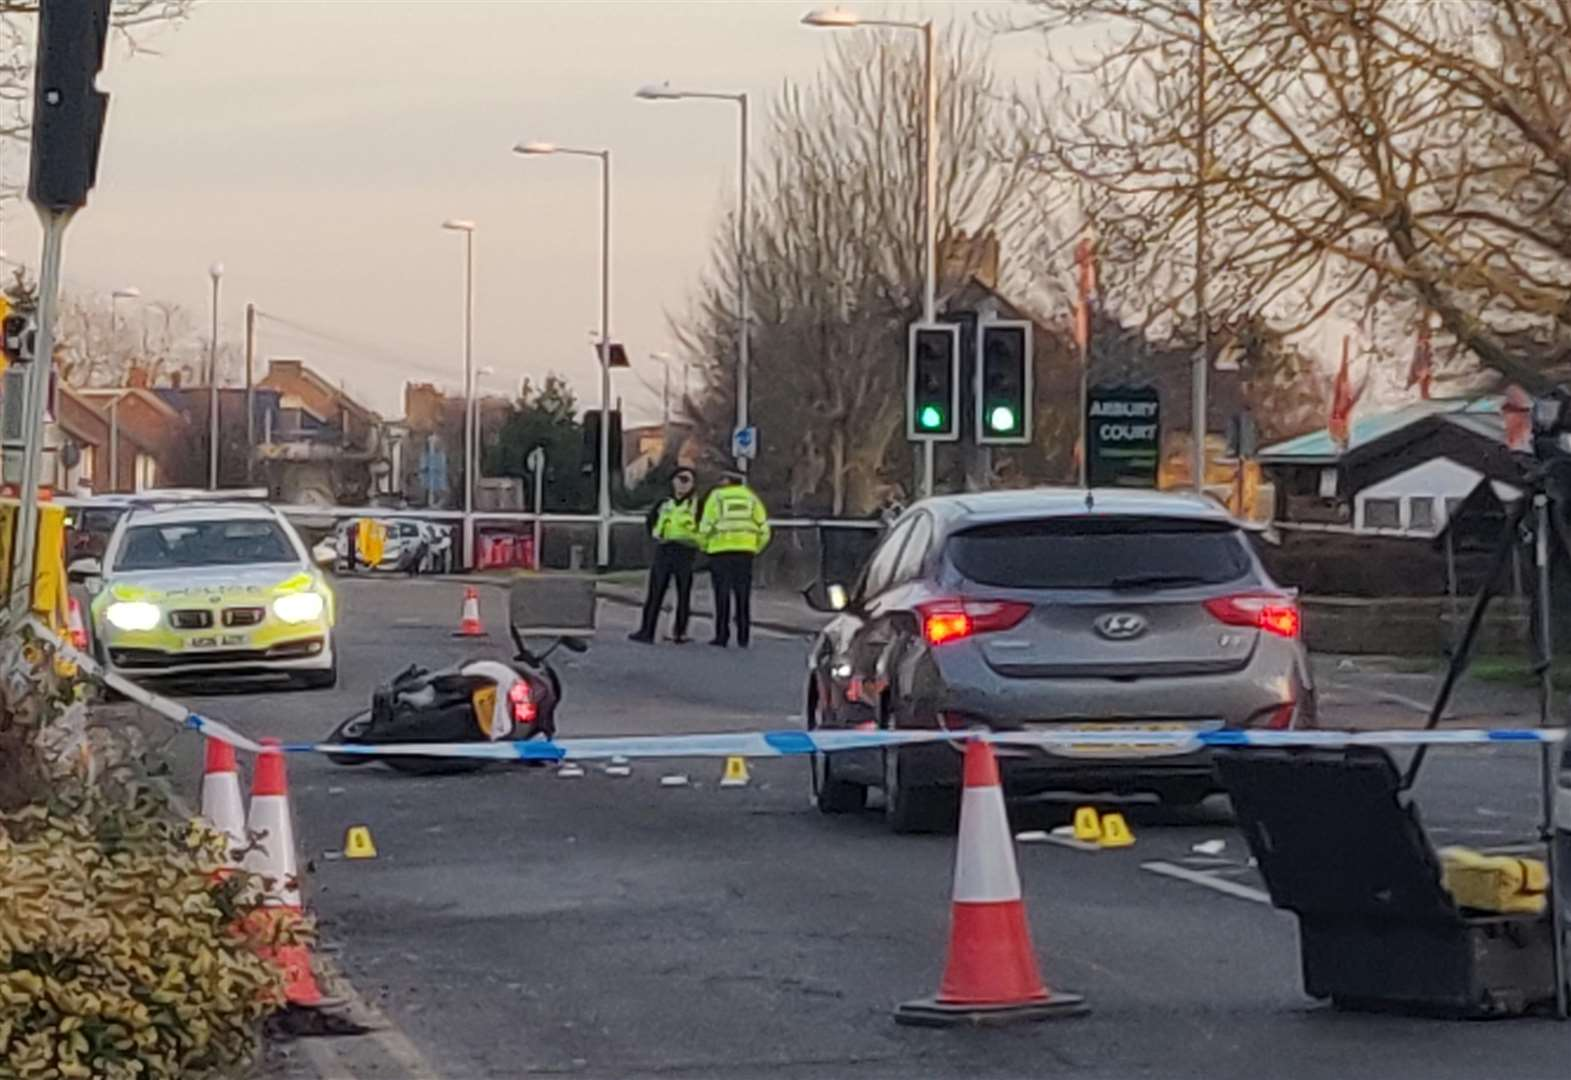 Two arrests after pedestrian dies in collision with moped in Cambridge